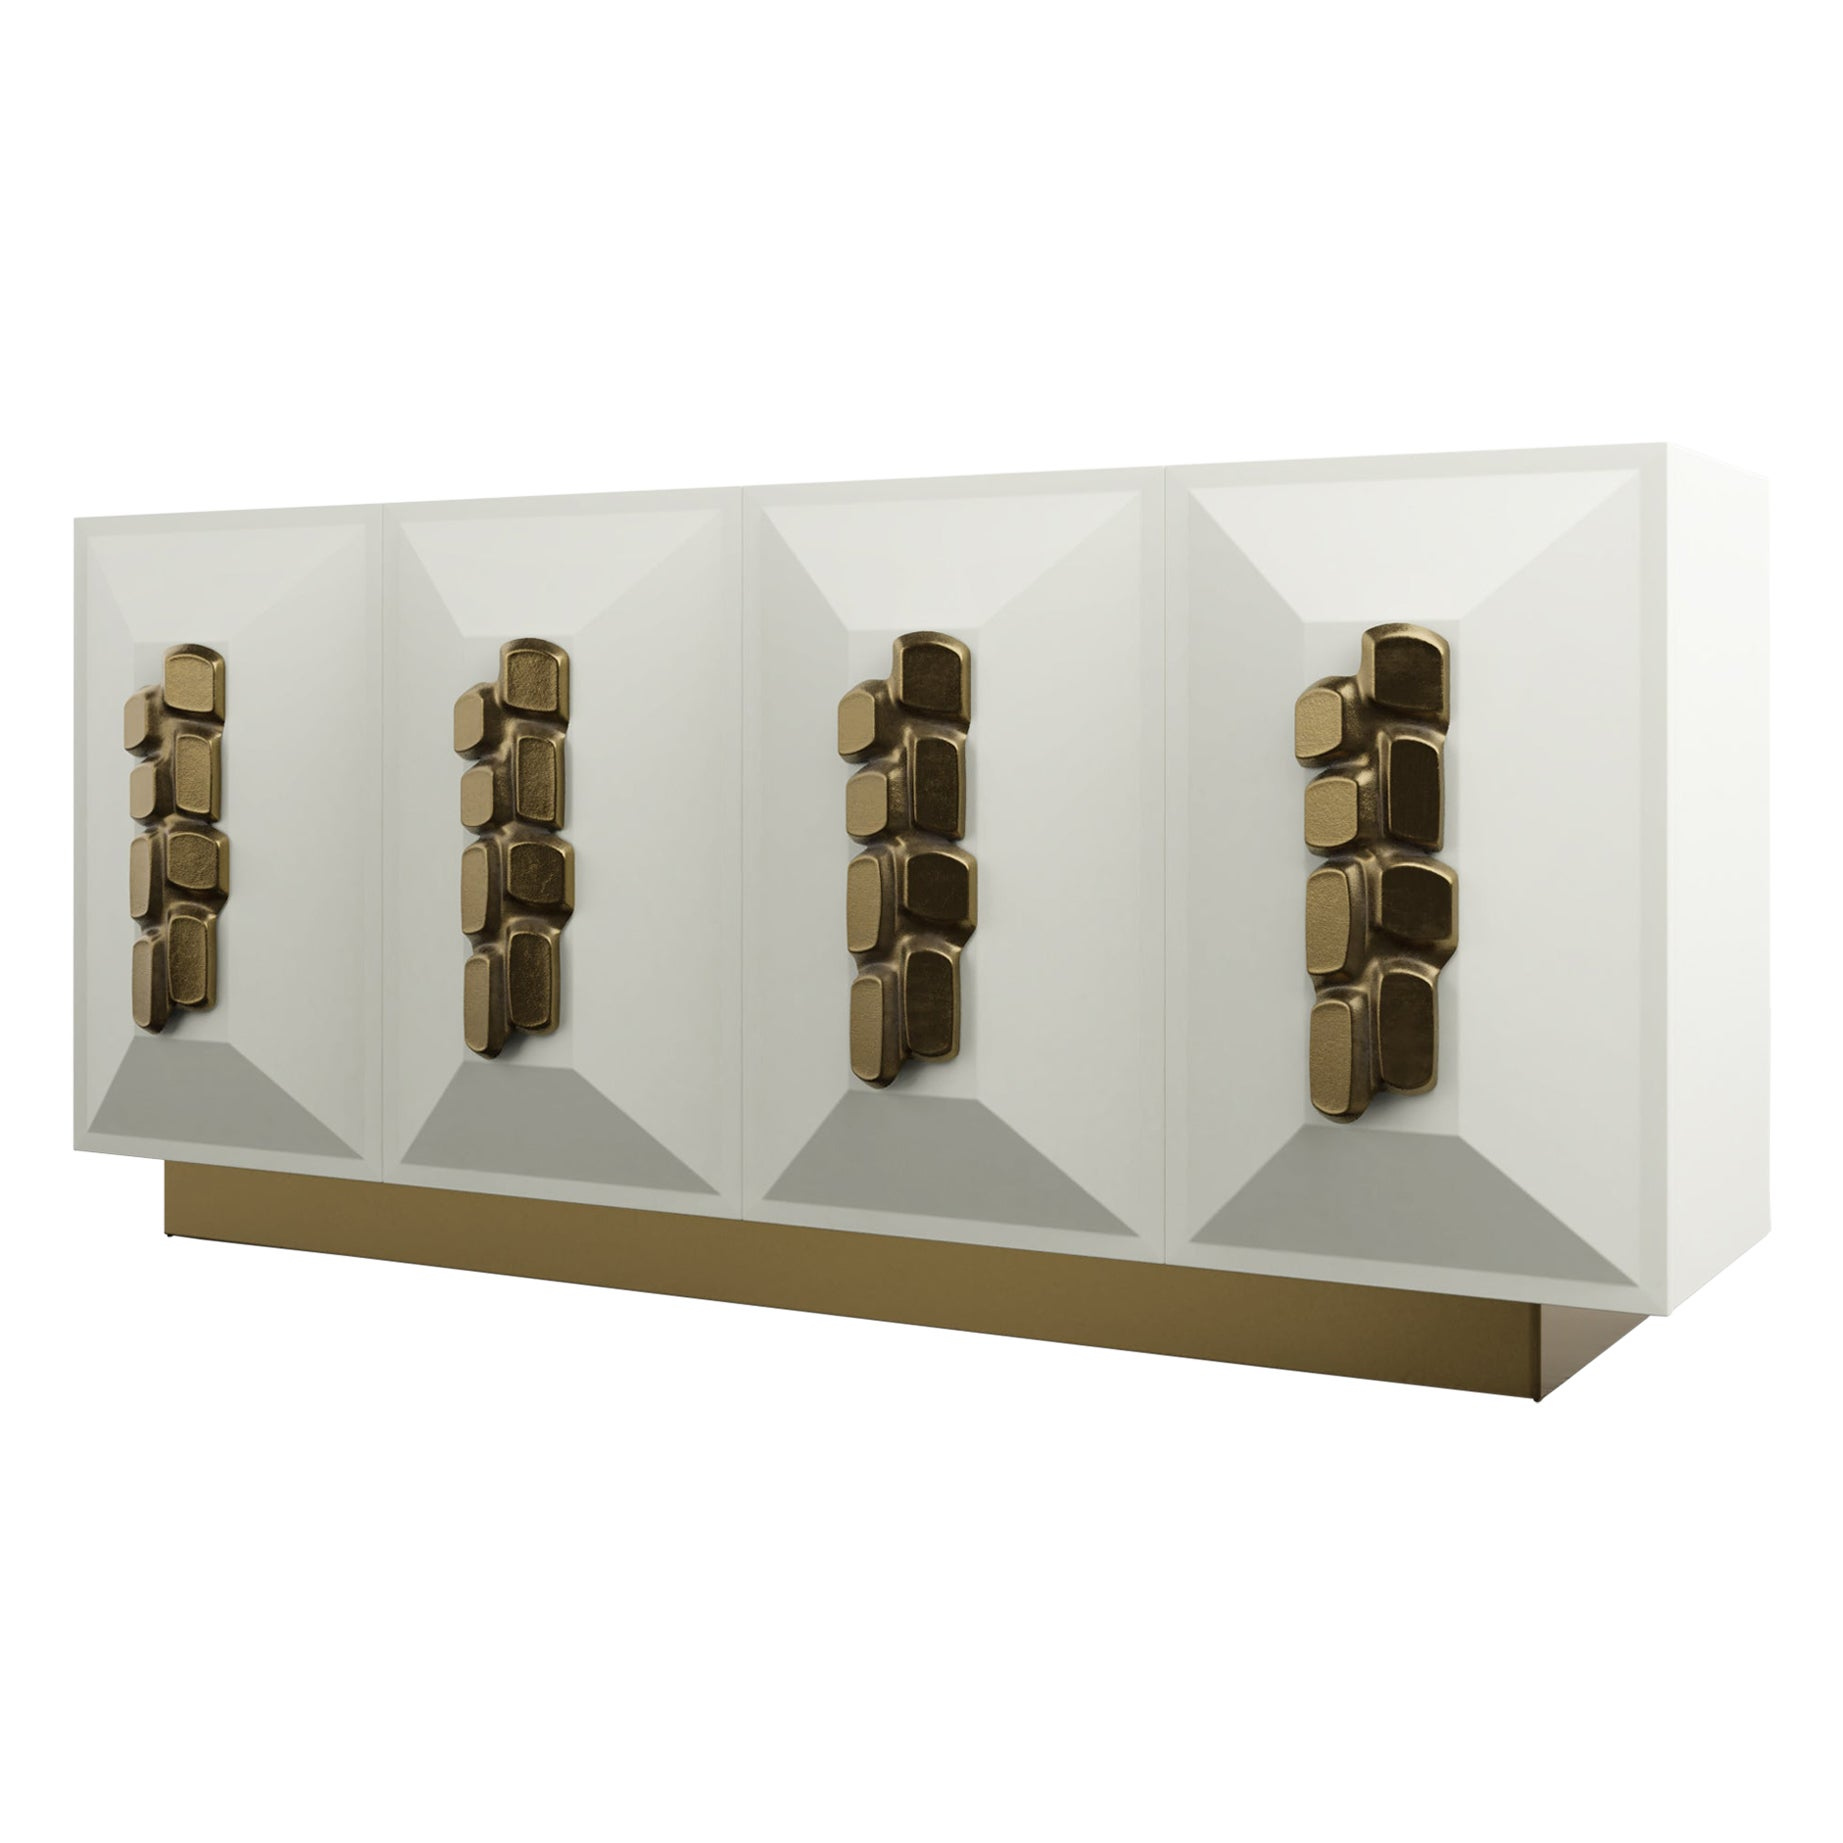 FAUSTINE CREDENZA - Modern cream lacquer with bronze handles